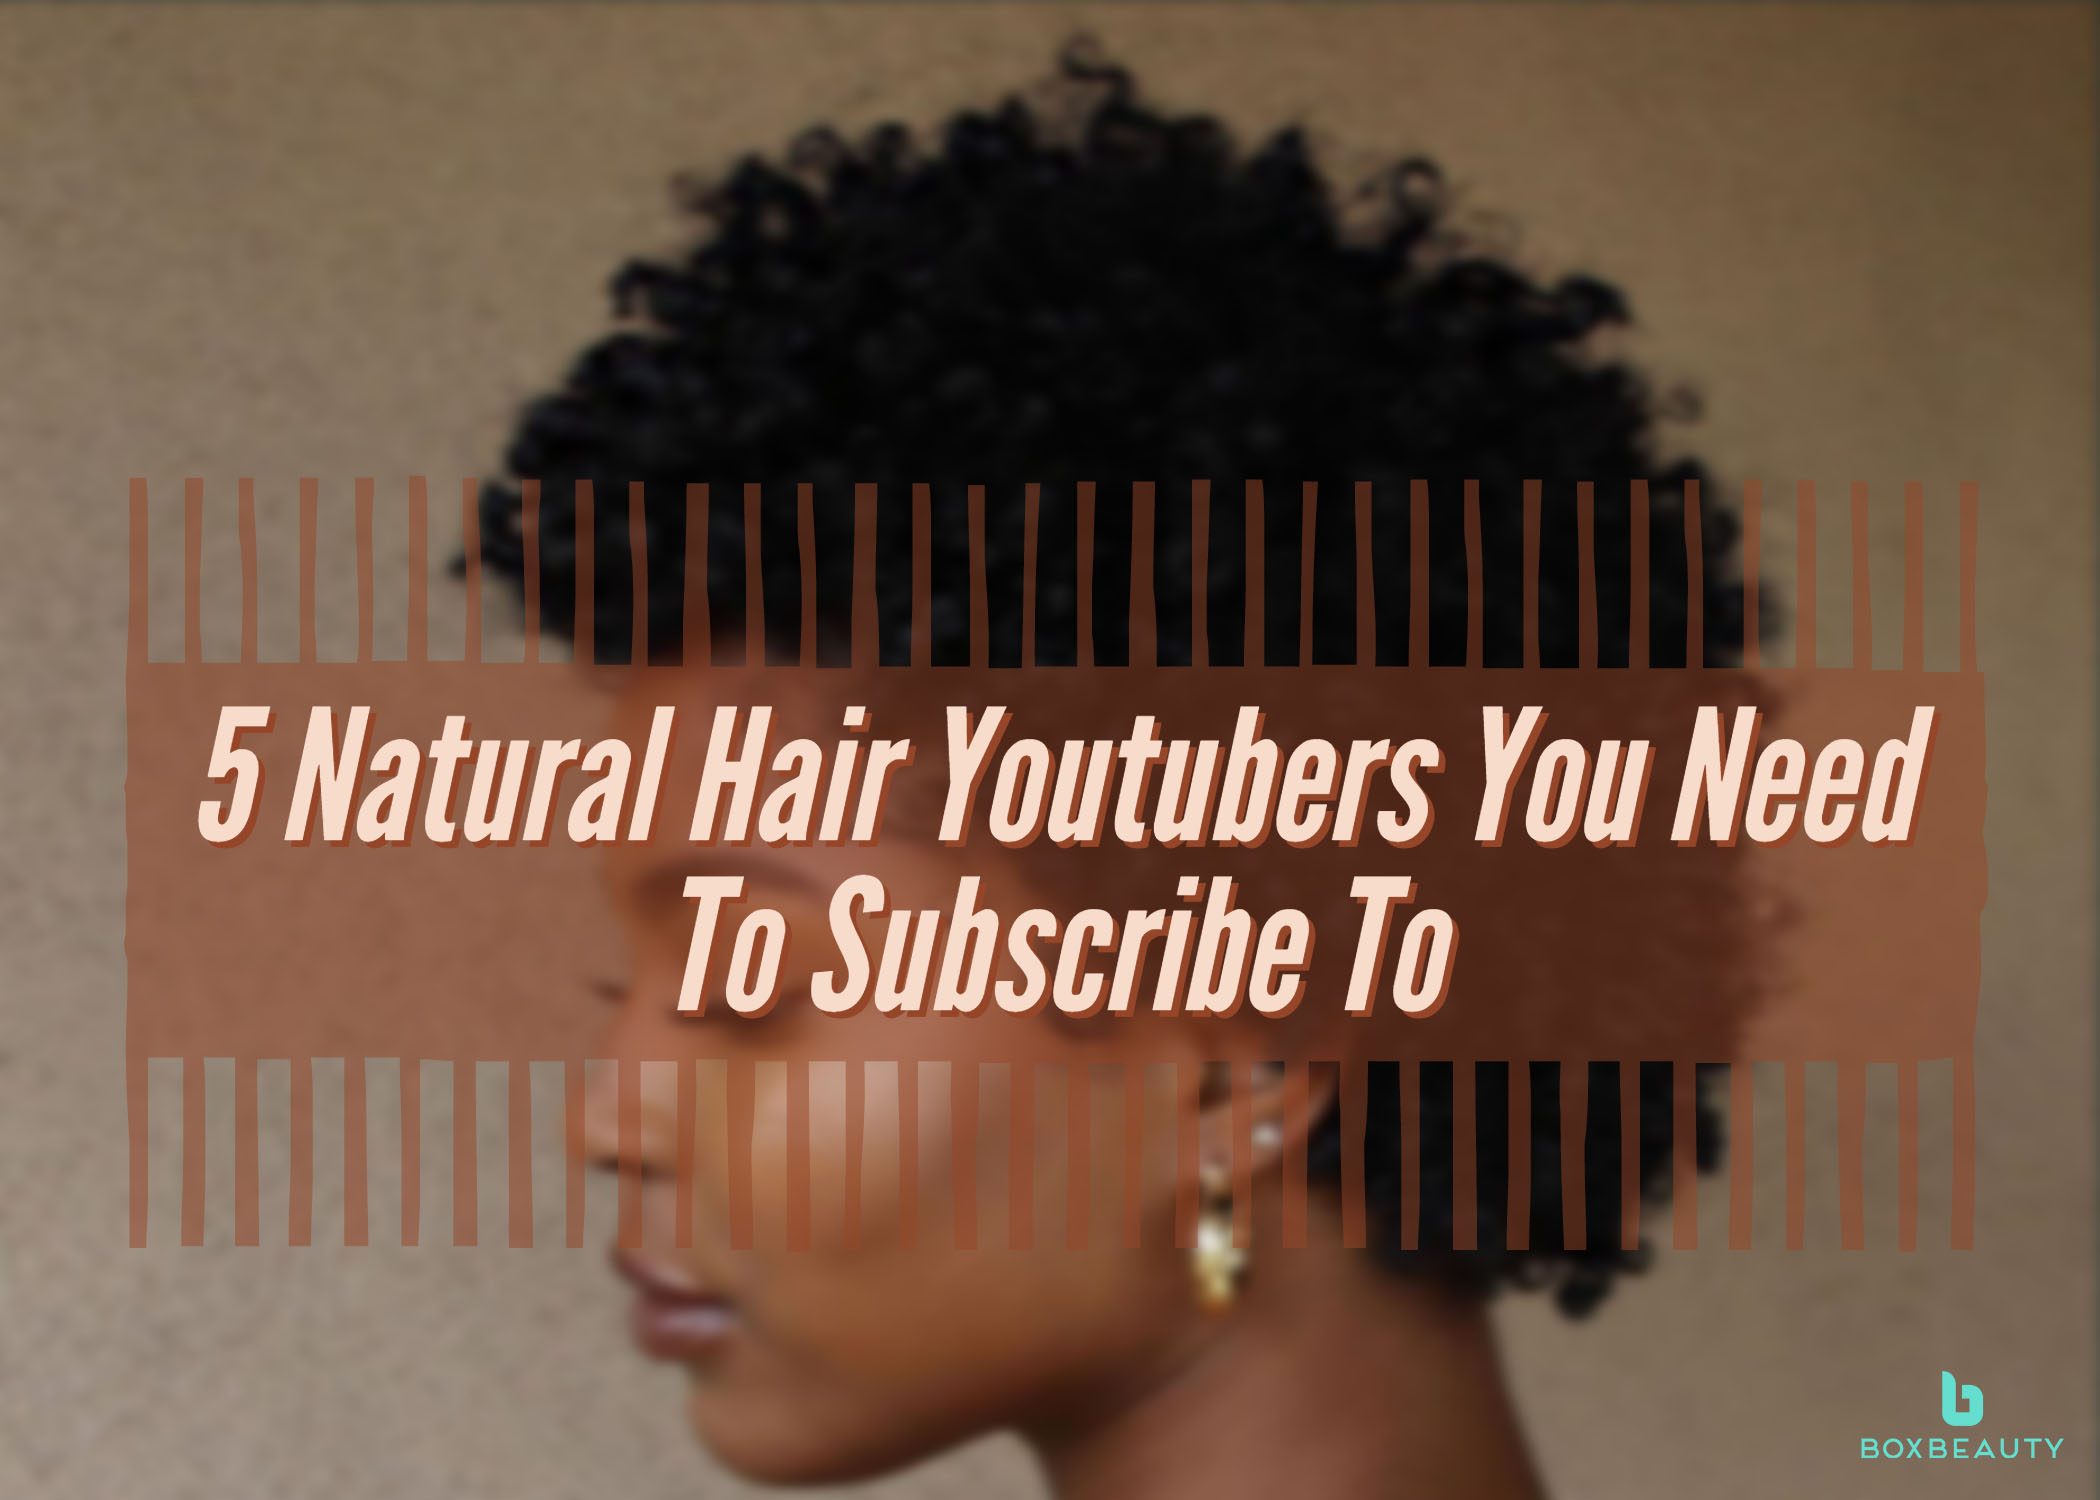 5 Natural Hair Youtubers You Need To Subscribe To